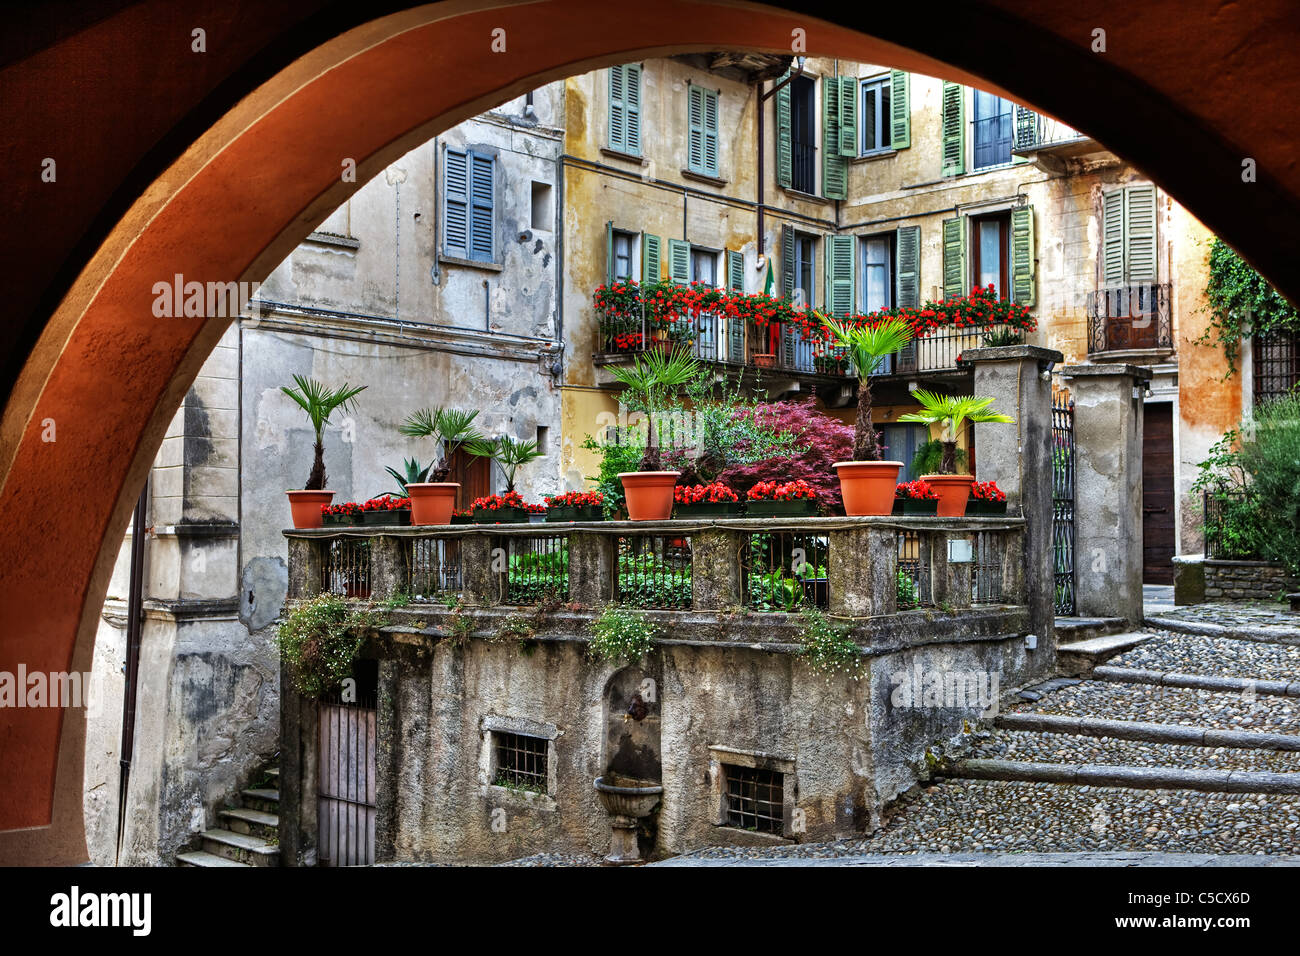 Looking through an arch in old houses in the town of Orta in Piedmont, Italy - Stock Image